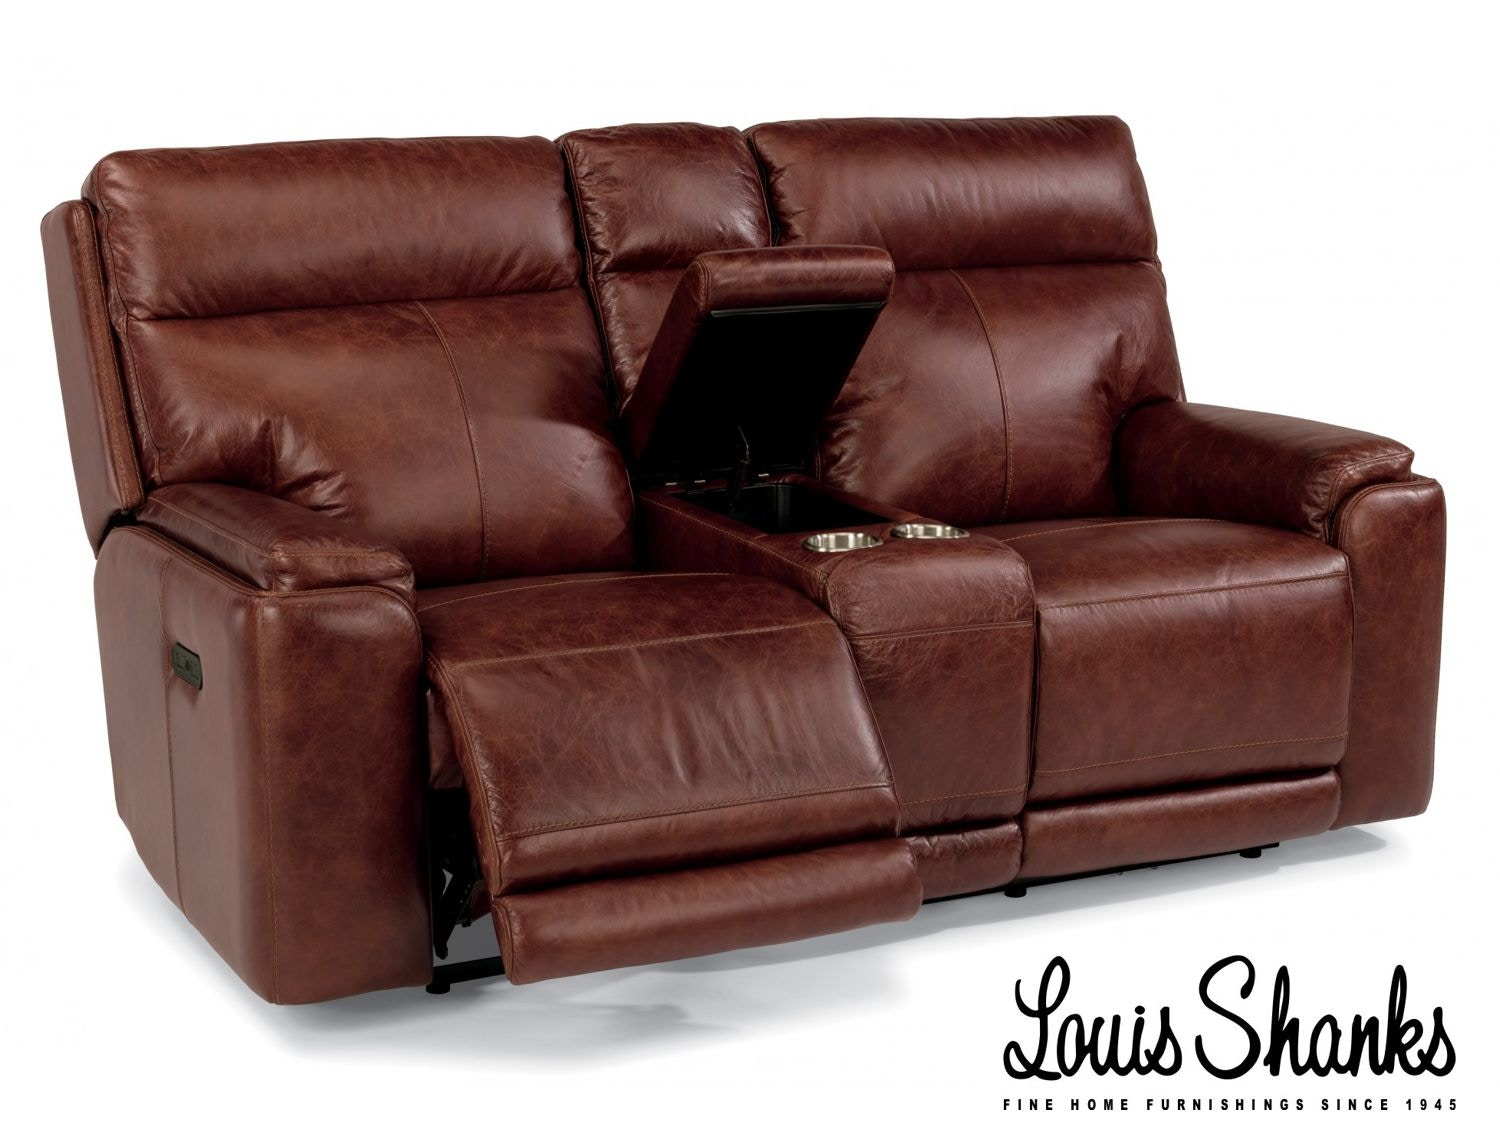 Flexsteel Sienna Leather Power Reclining Loveseat with Power Headrest and console  sc 1 st  Louis Shanks & Living Room Loveseats - Louis Shanks - Austin San Antonio TX islam-shia.org